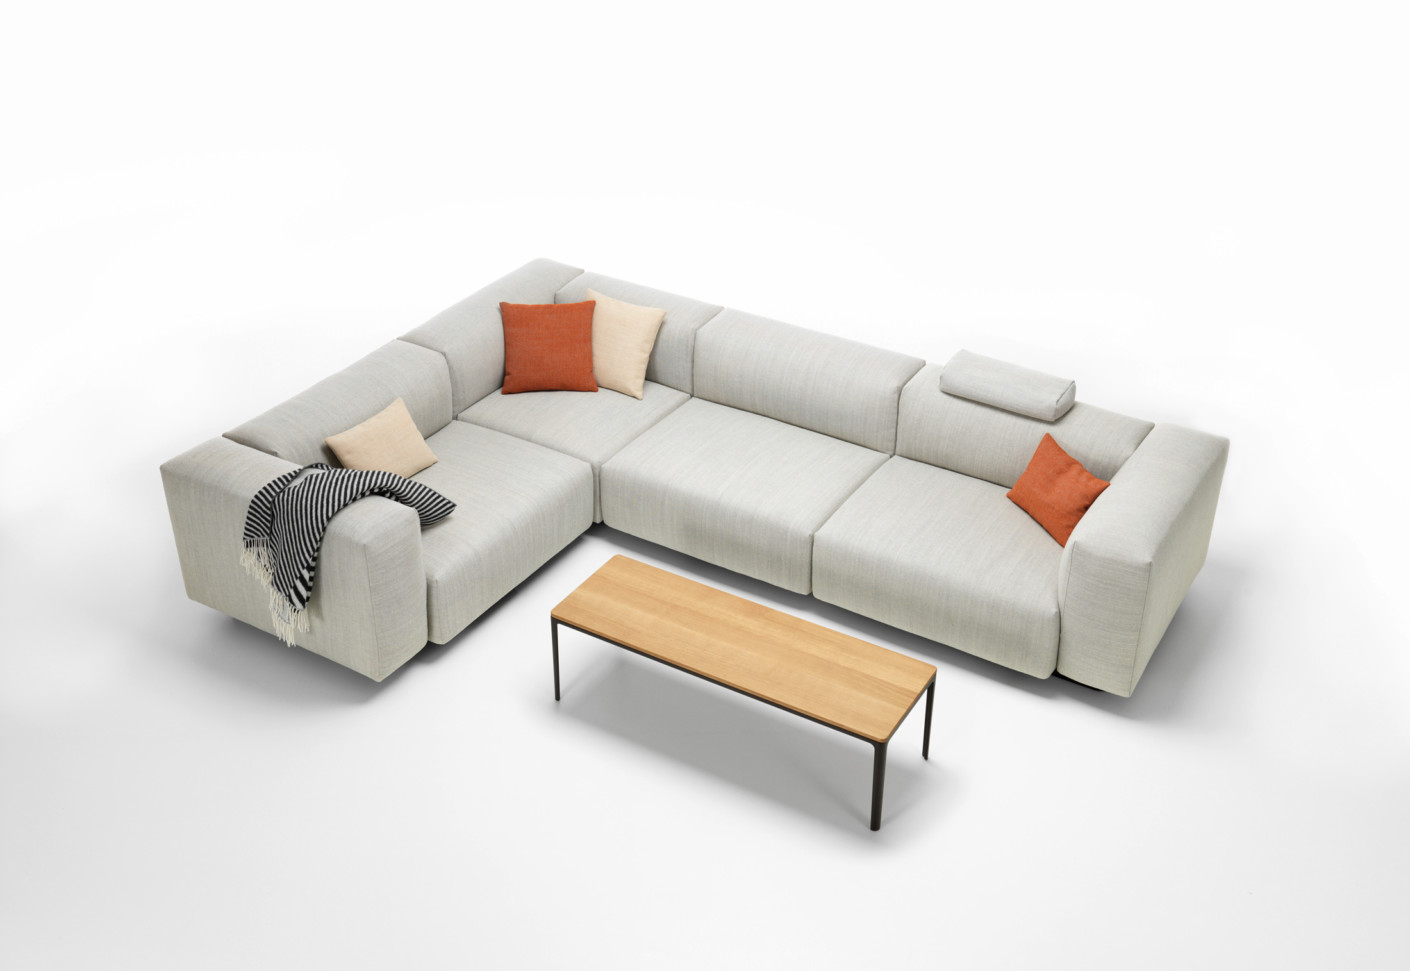 vitra sofa modular hamptons top grain leather reclining loveseat and chair set soft by stylepark